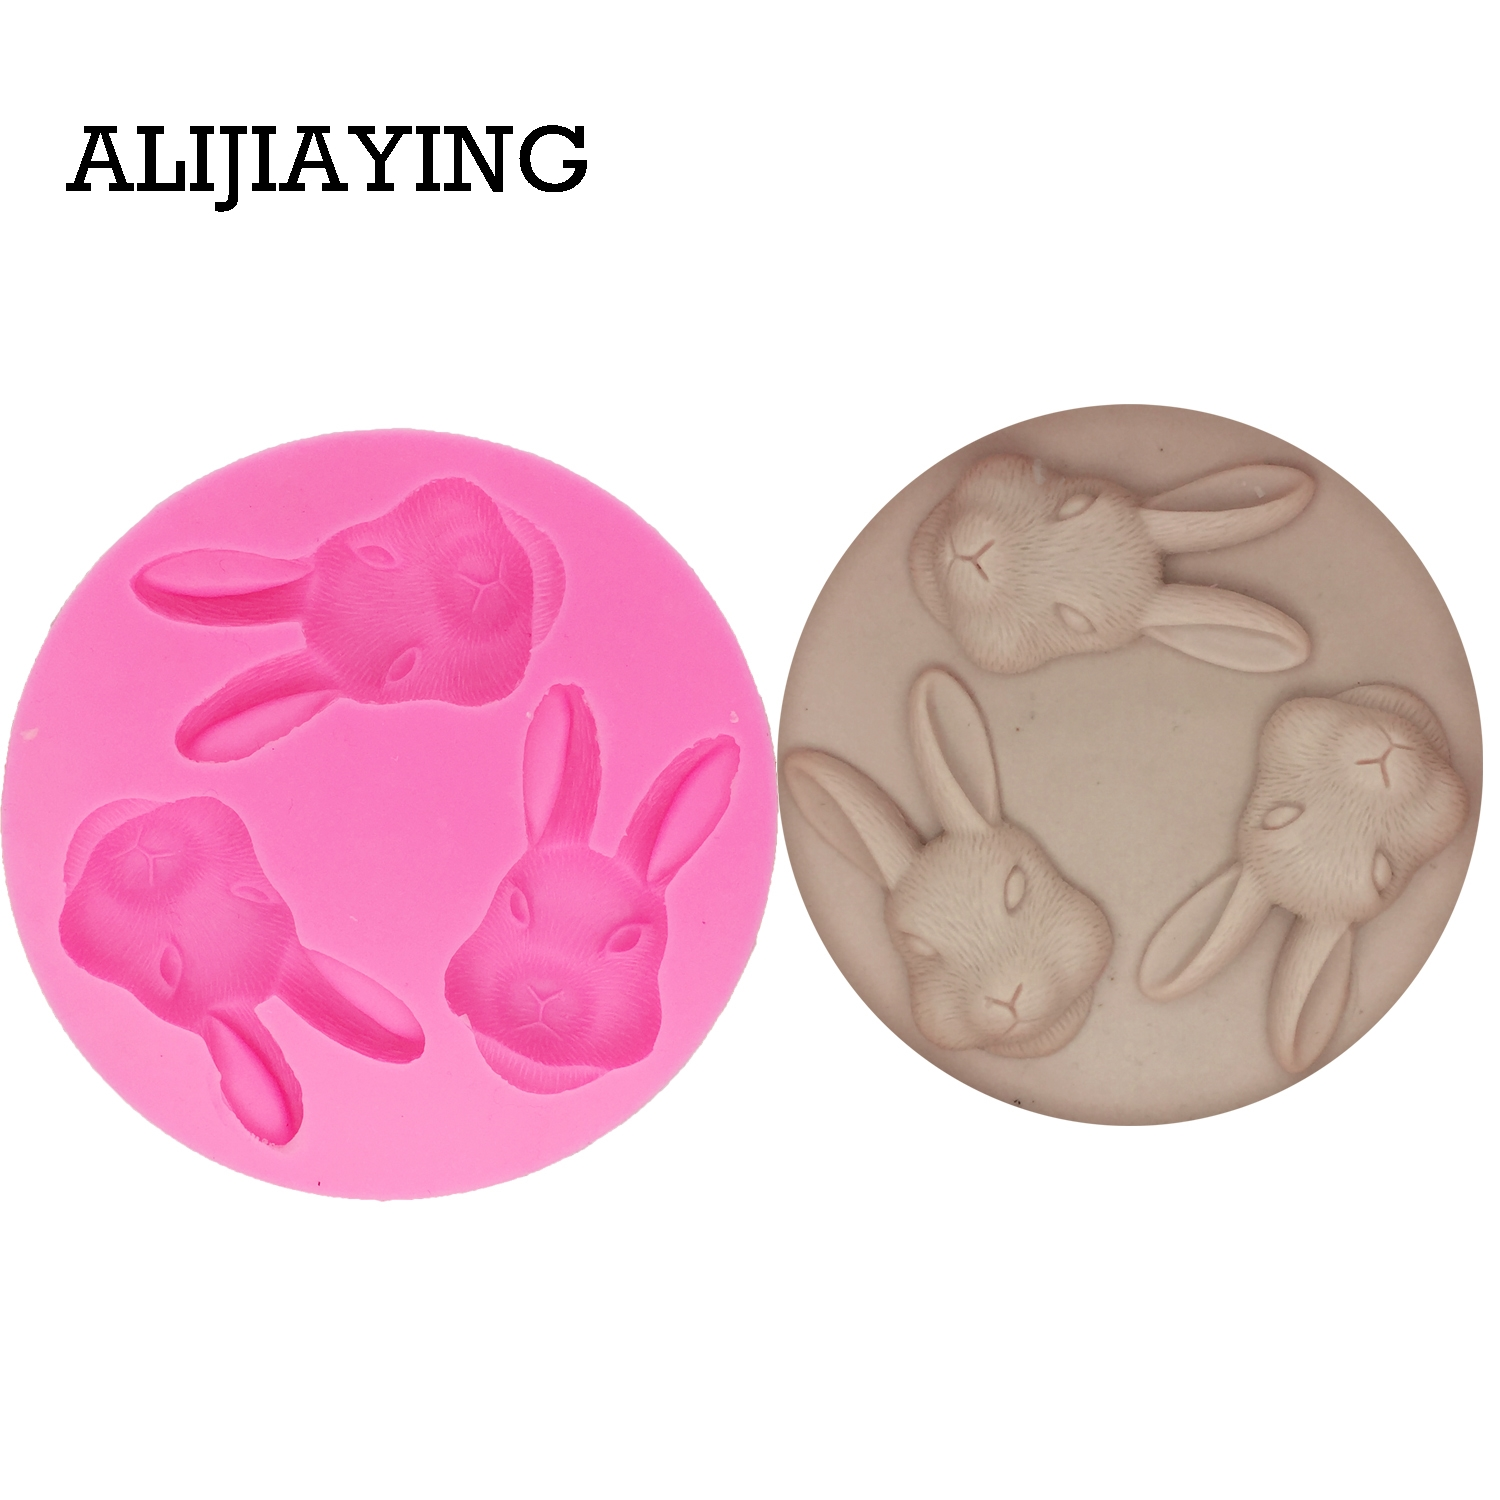 DY0008 Easter bunny Silicone Mold chocolate <font><b>Fondant</b></font> Molds rabbit <font><b>Cake</b></font> <font><b>Decorating</b></font> <font><b>Tools</b></font> modelling Kitchen Baking <font><b>Accessories</b></font> image